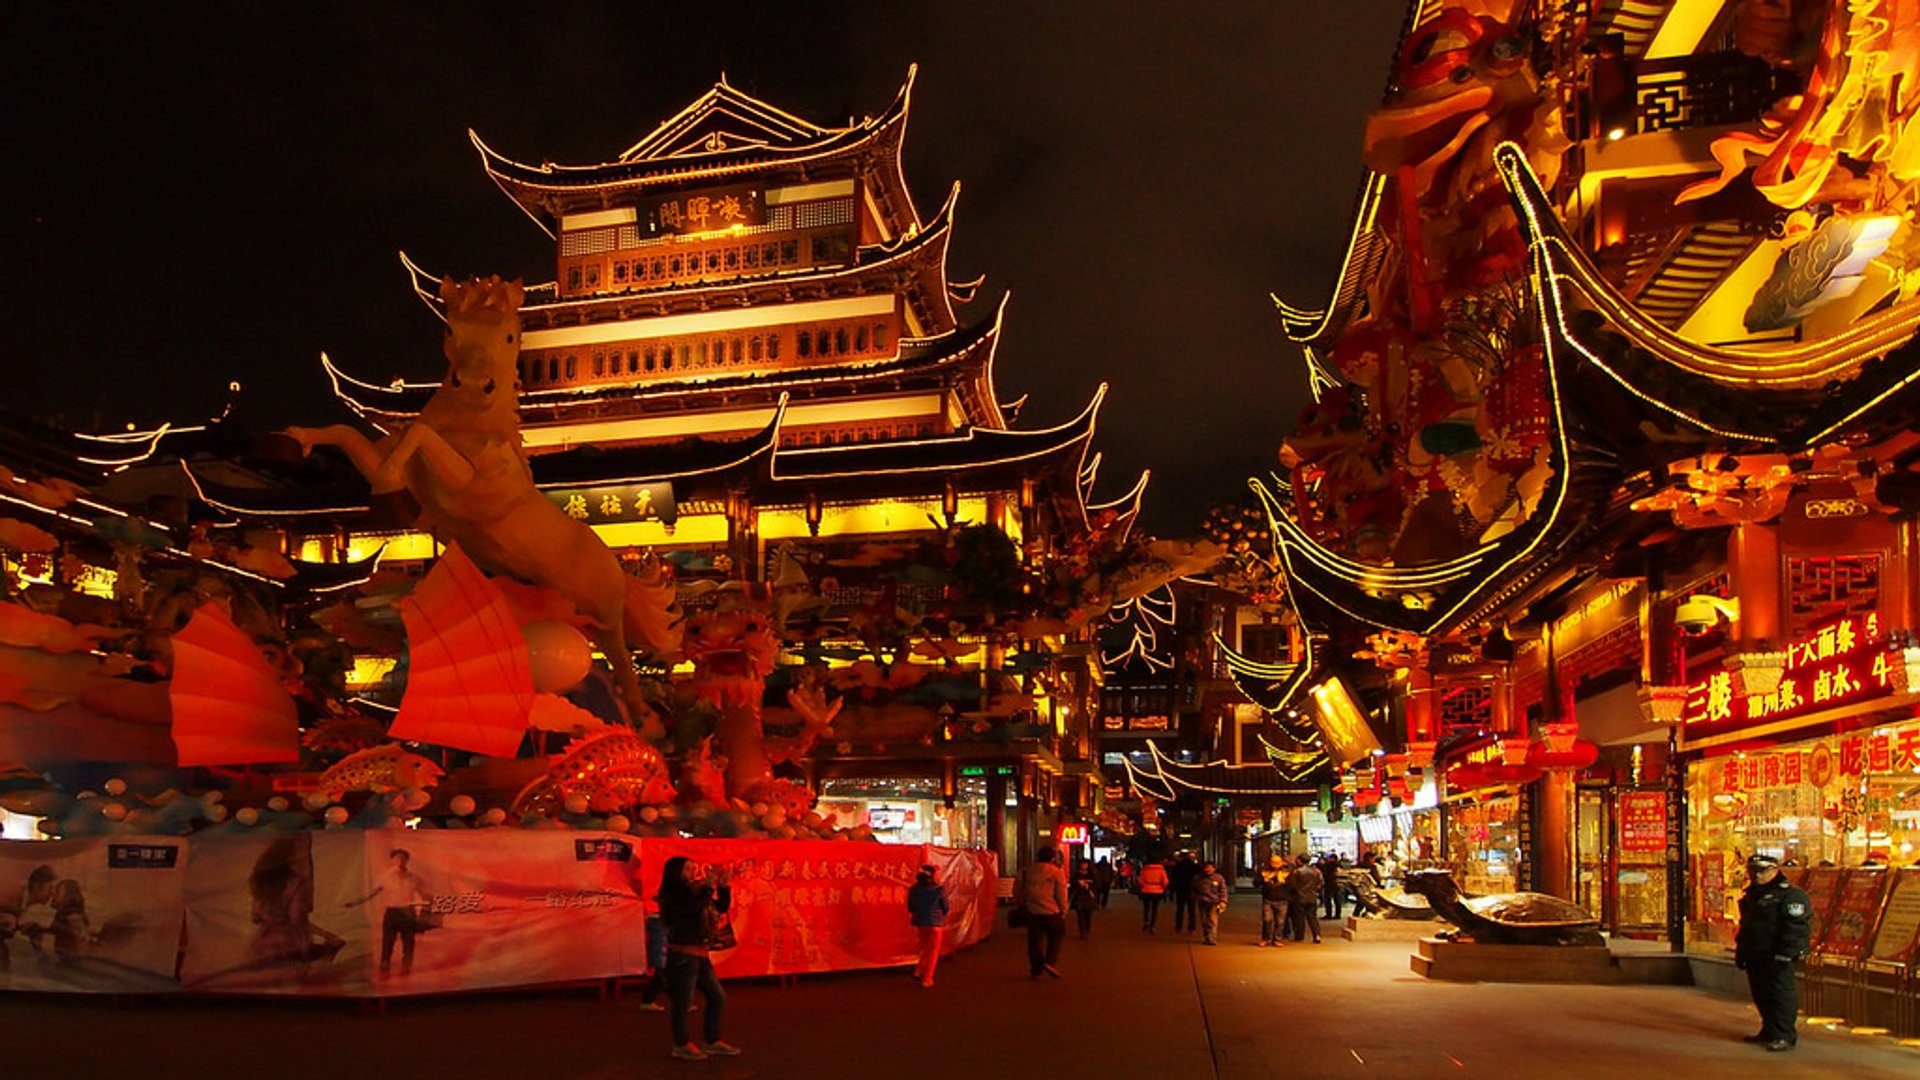 Spring Festival or Chinese New Year in Shanghai 2020 - Best Time